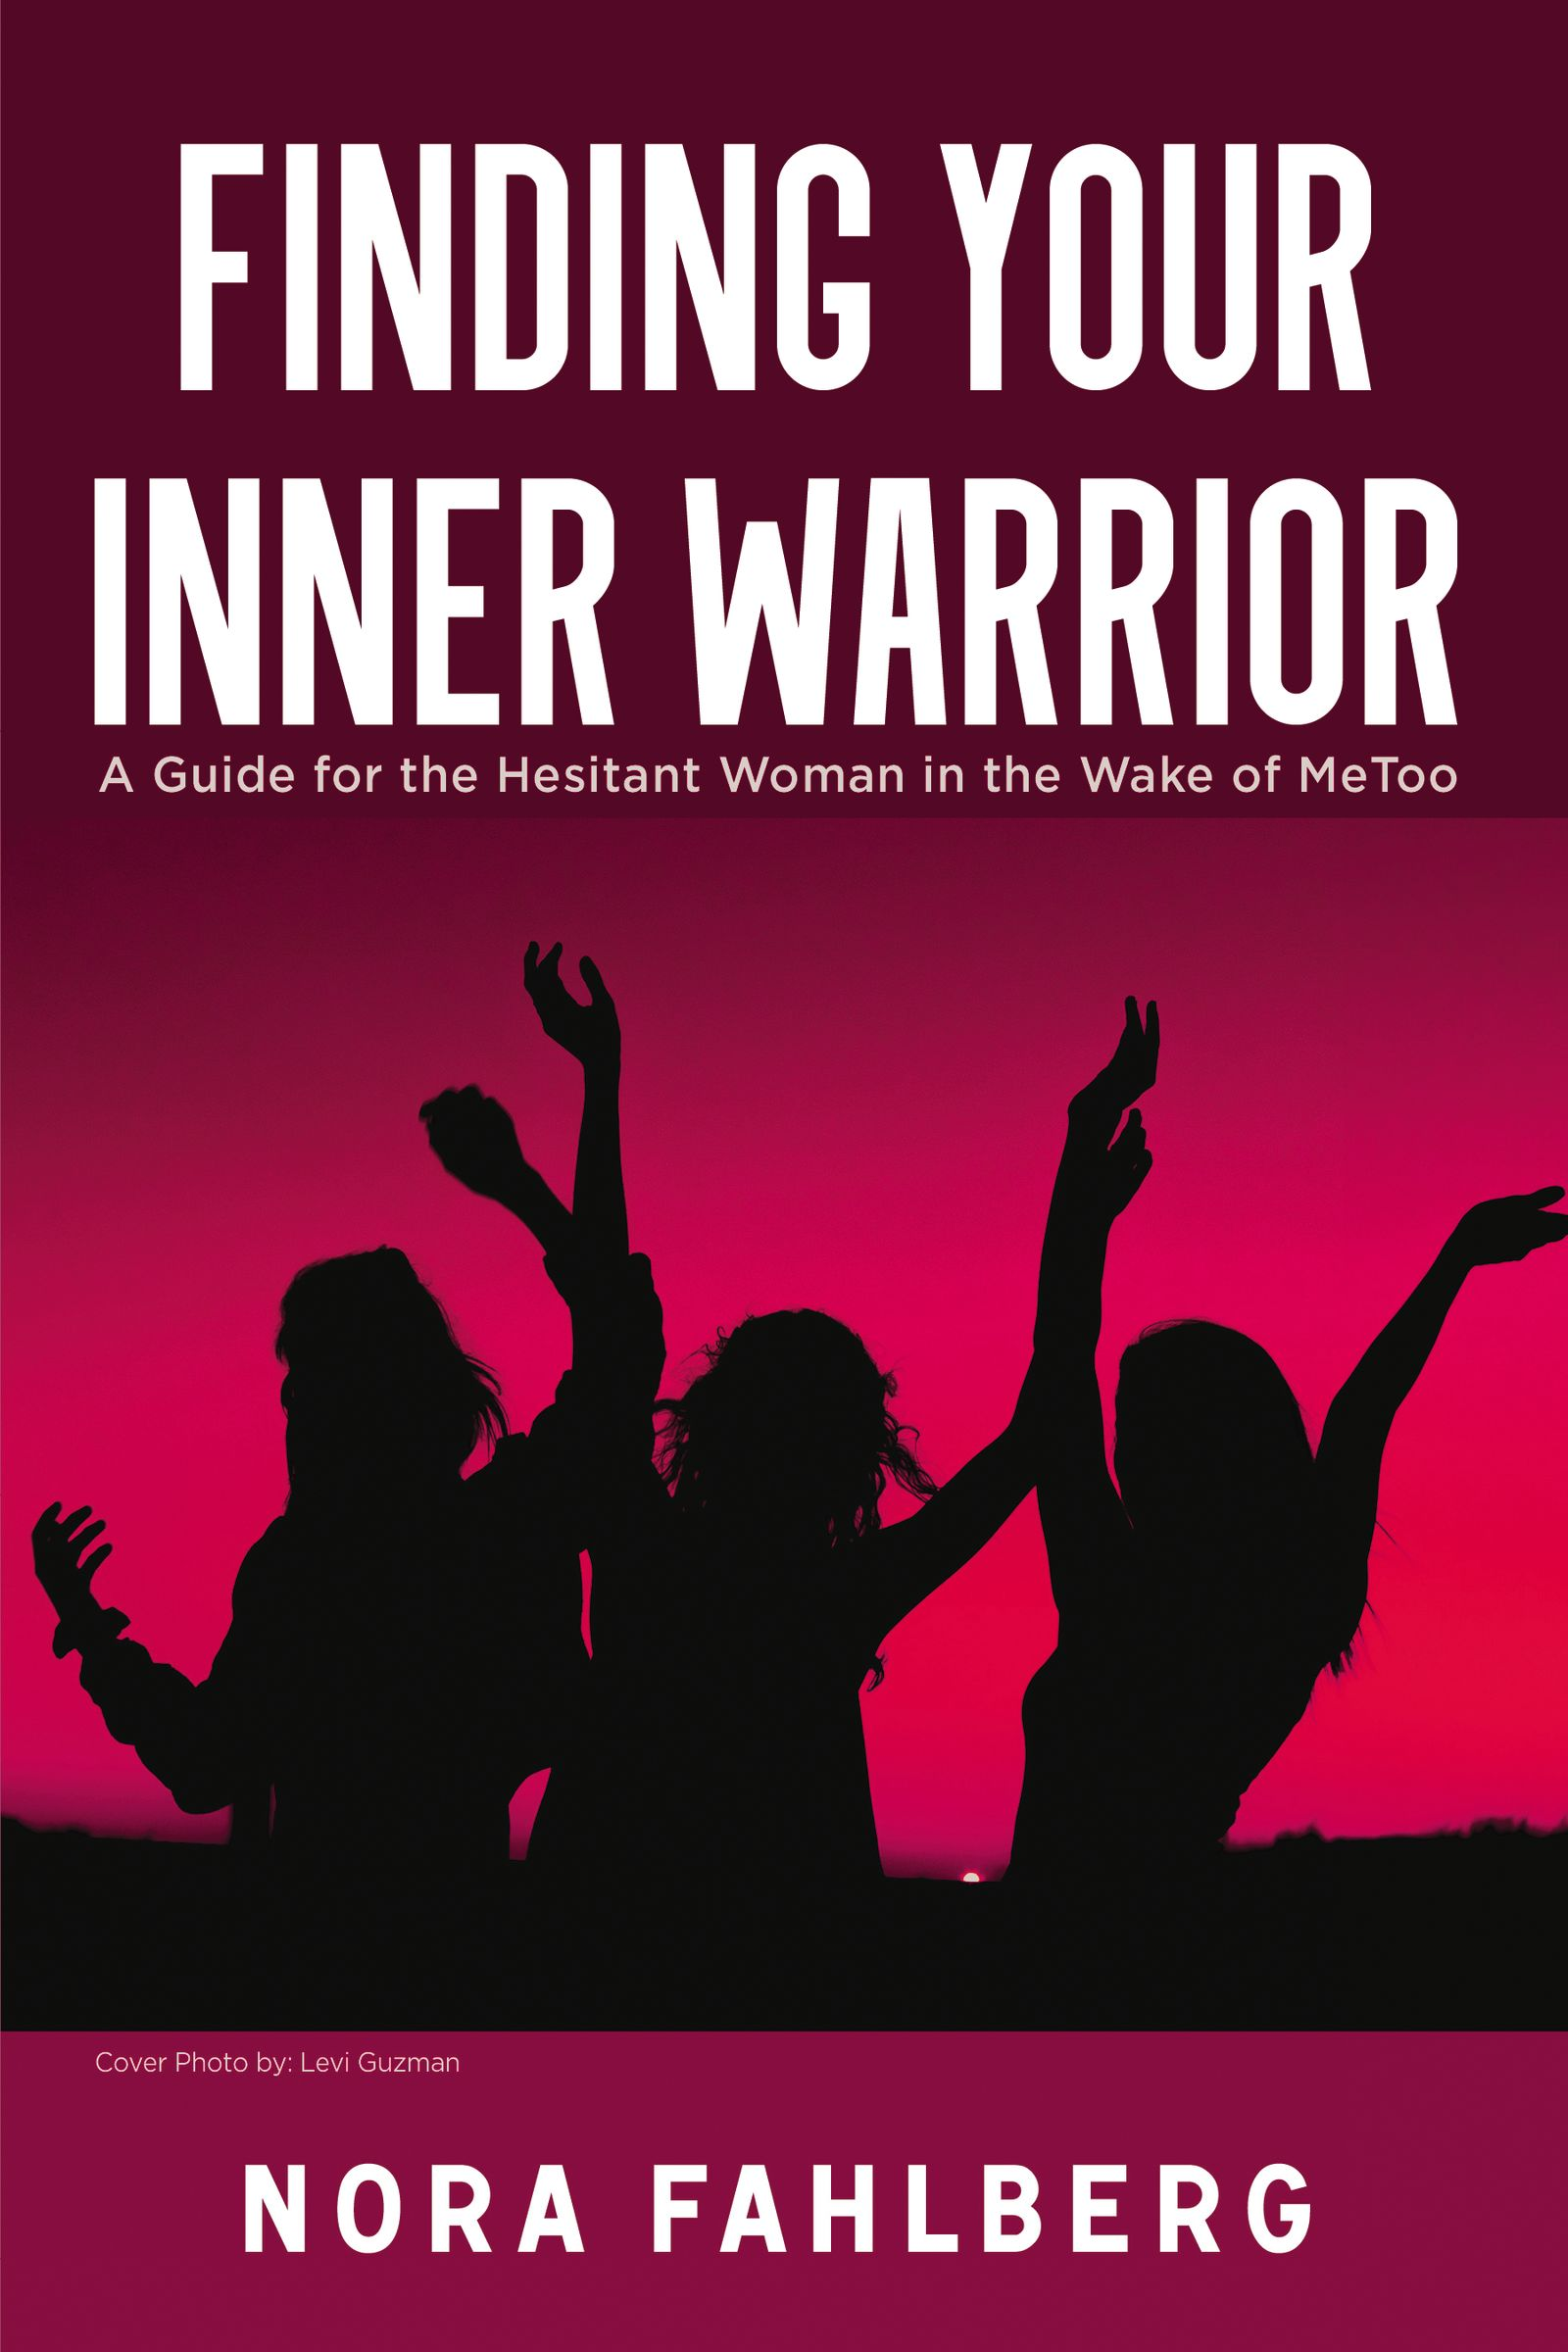 [PDF] [EPUB] Finding Your Inner Warrior: A Guide for the Hesitant Woman in the Wake of MeToo Download by Nora Fahlberg